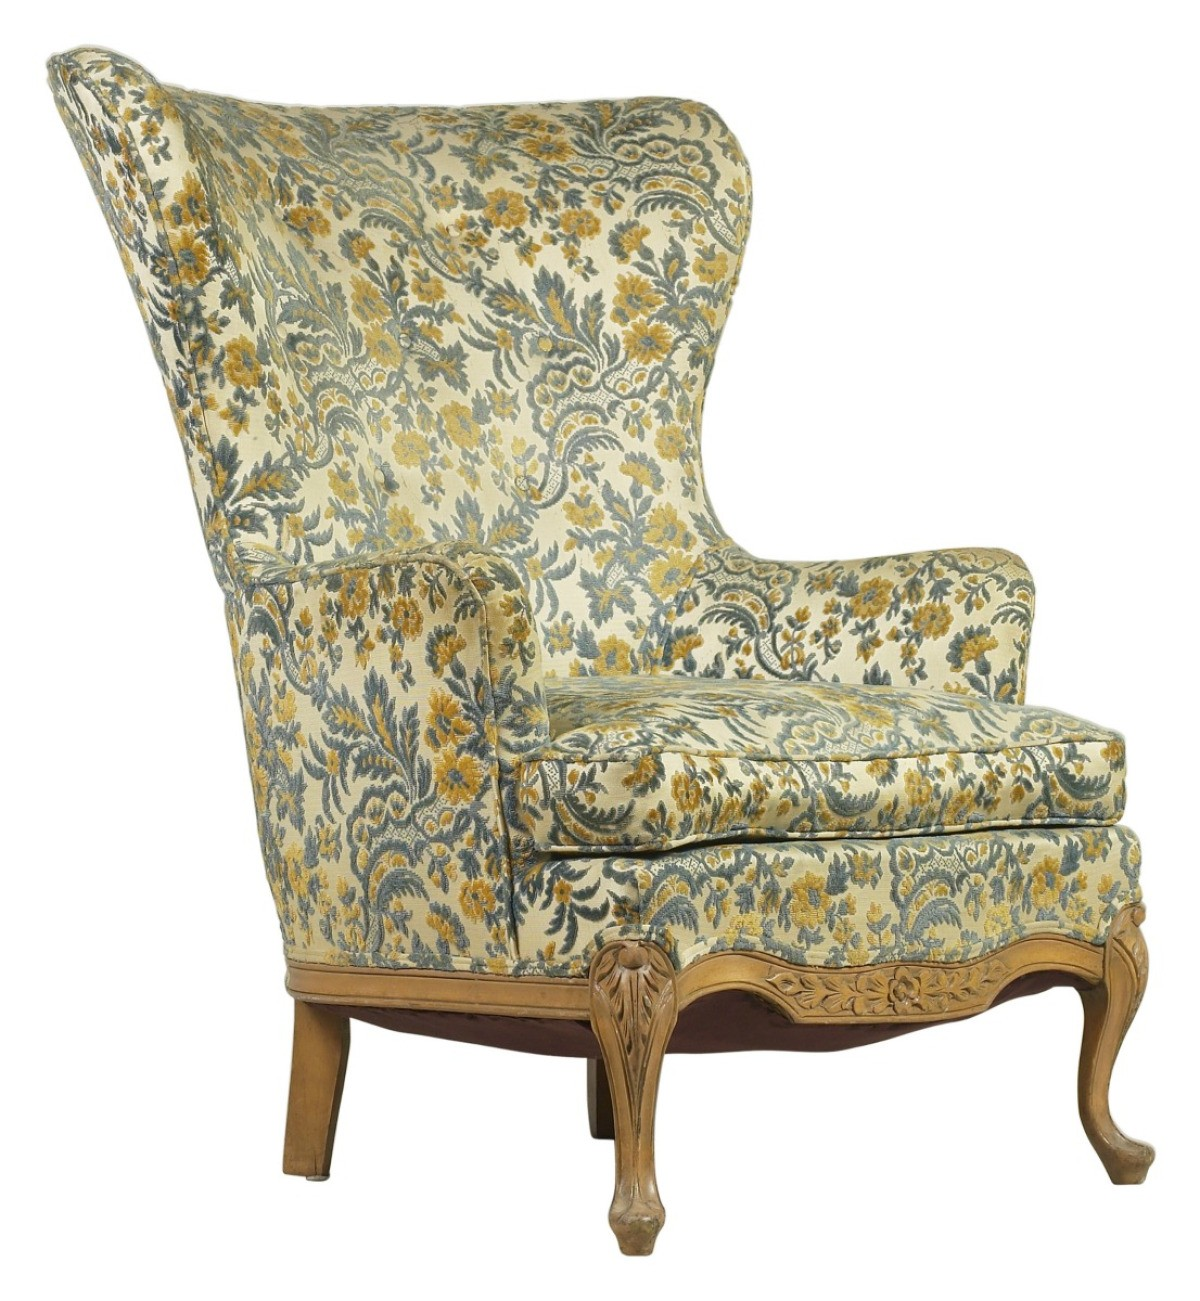 Miraculous Covering A Wing Chair Thriftyfun Pdpeps Interior Chair Design Pdpepsorg